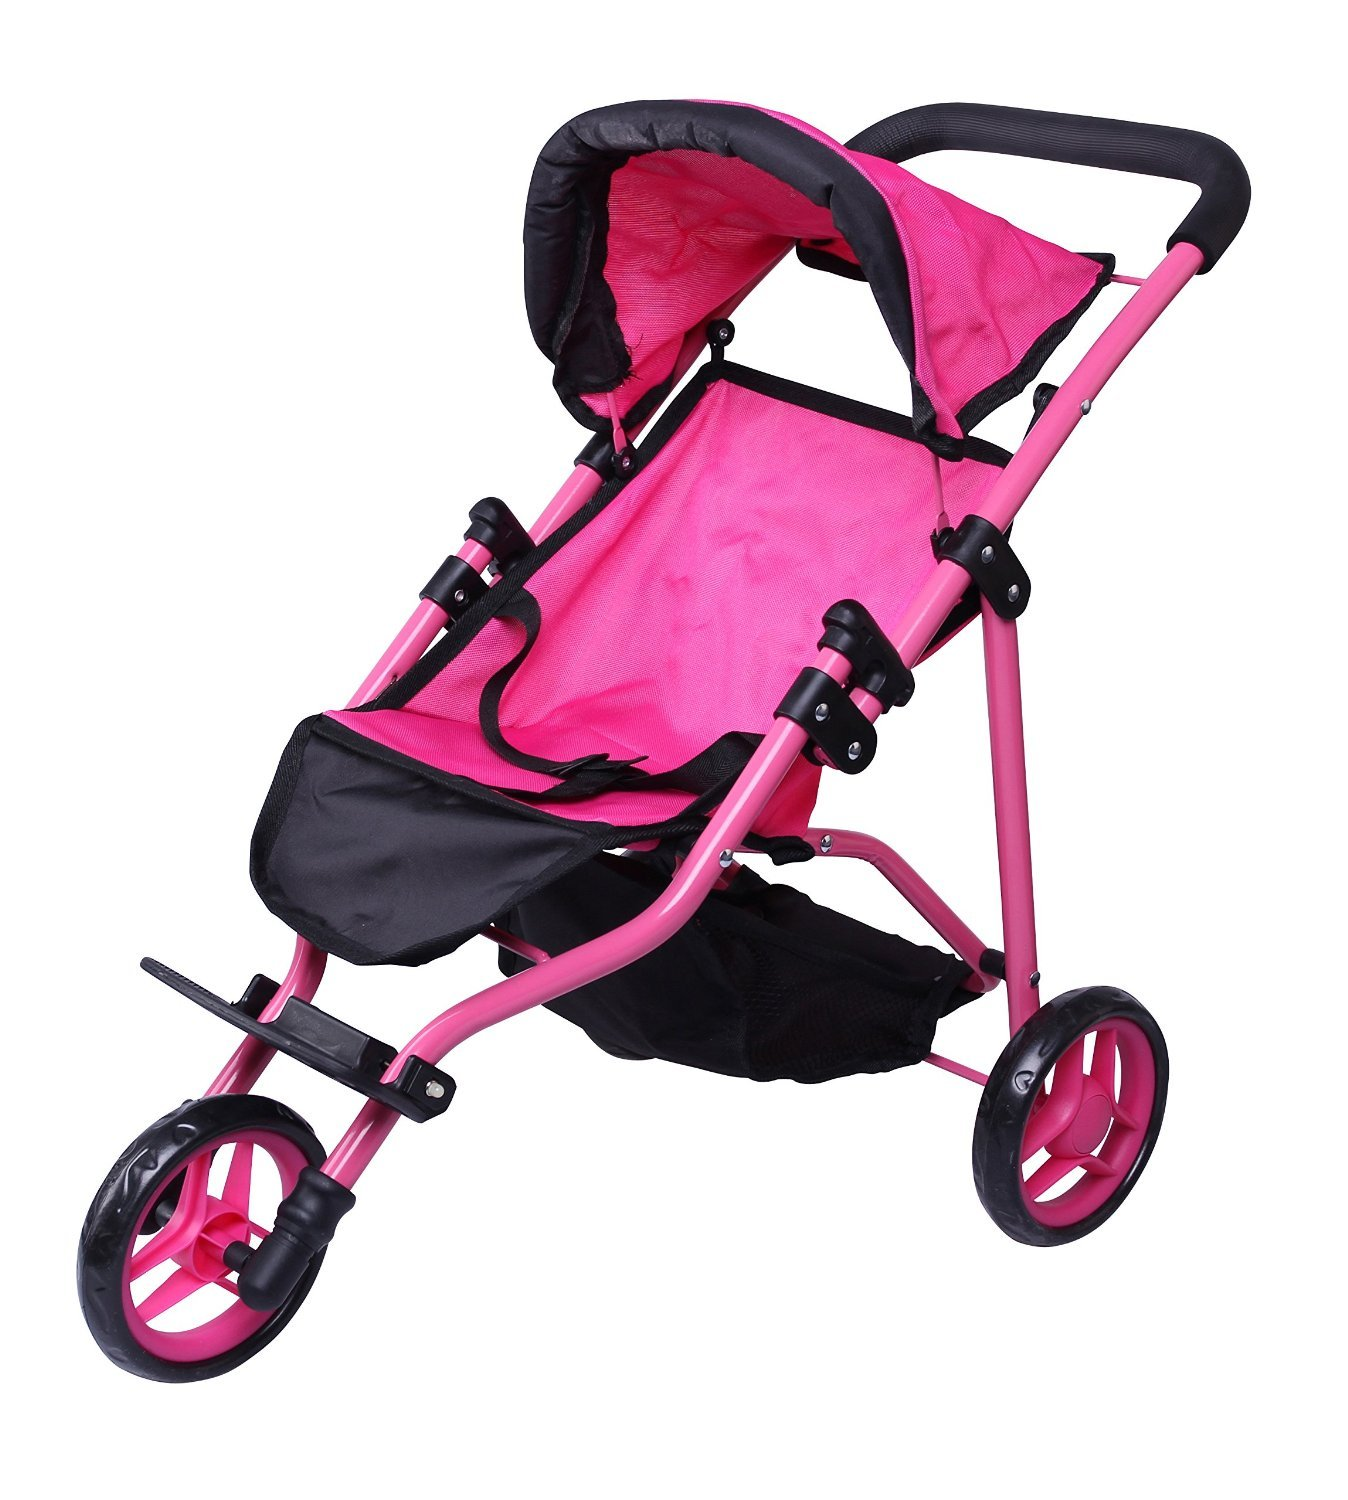 Amazon Precious Toys Jogger Hot Pink Doll Stroller Black Foam Handles and Hot Pink Frame 0129A Toys & Games